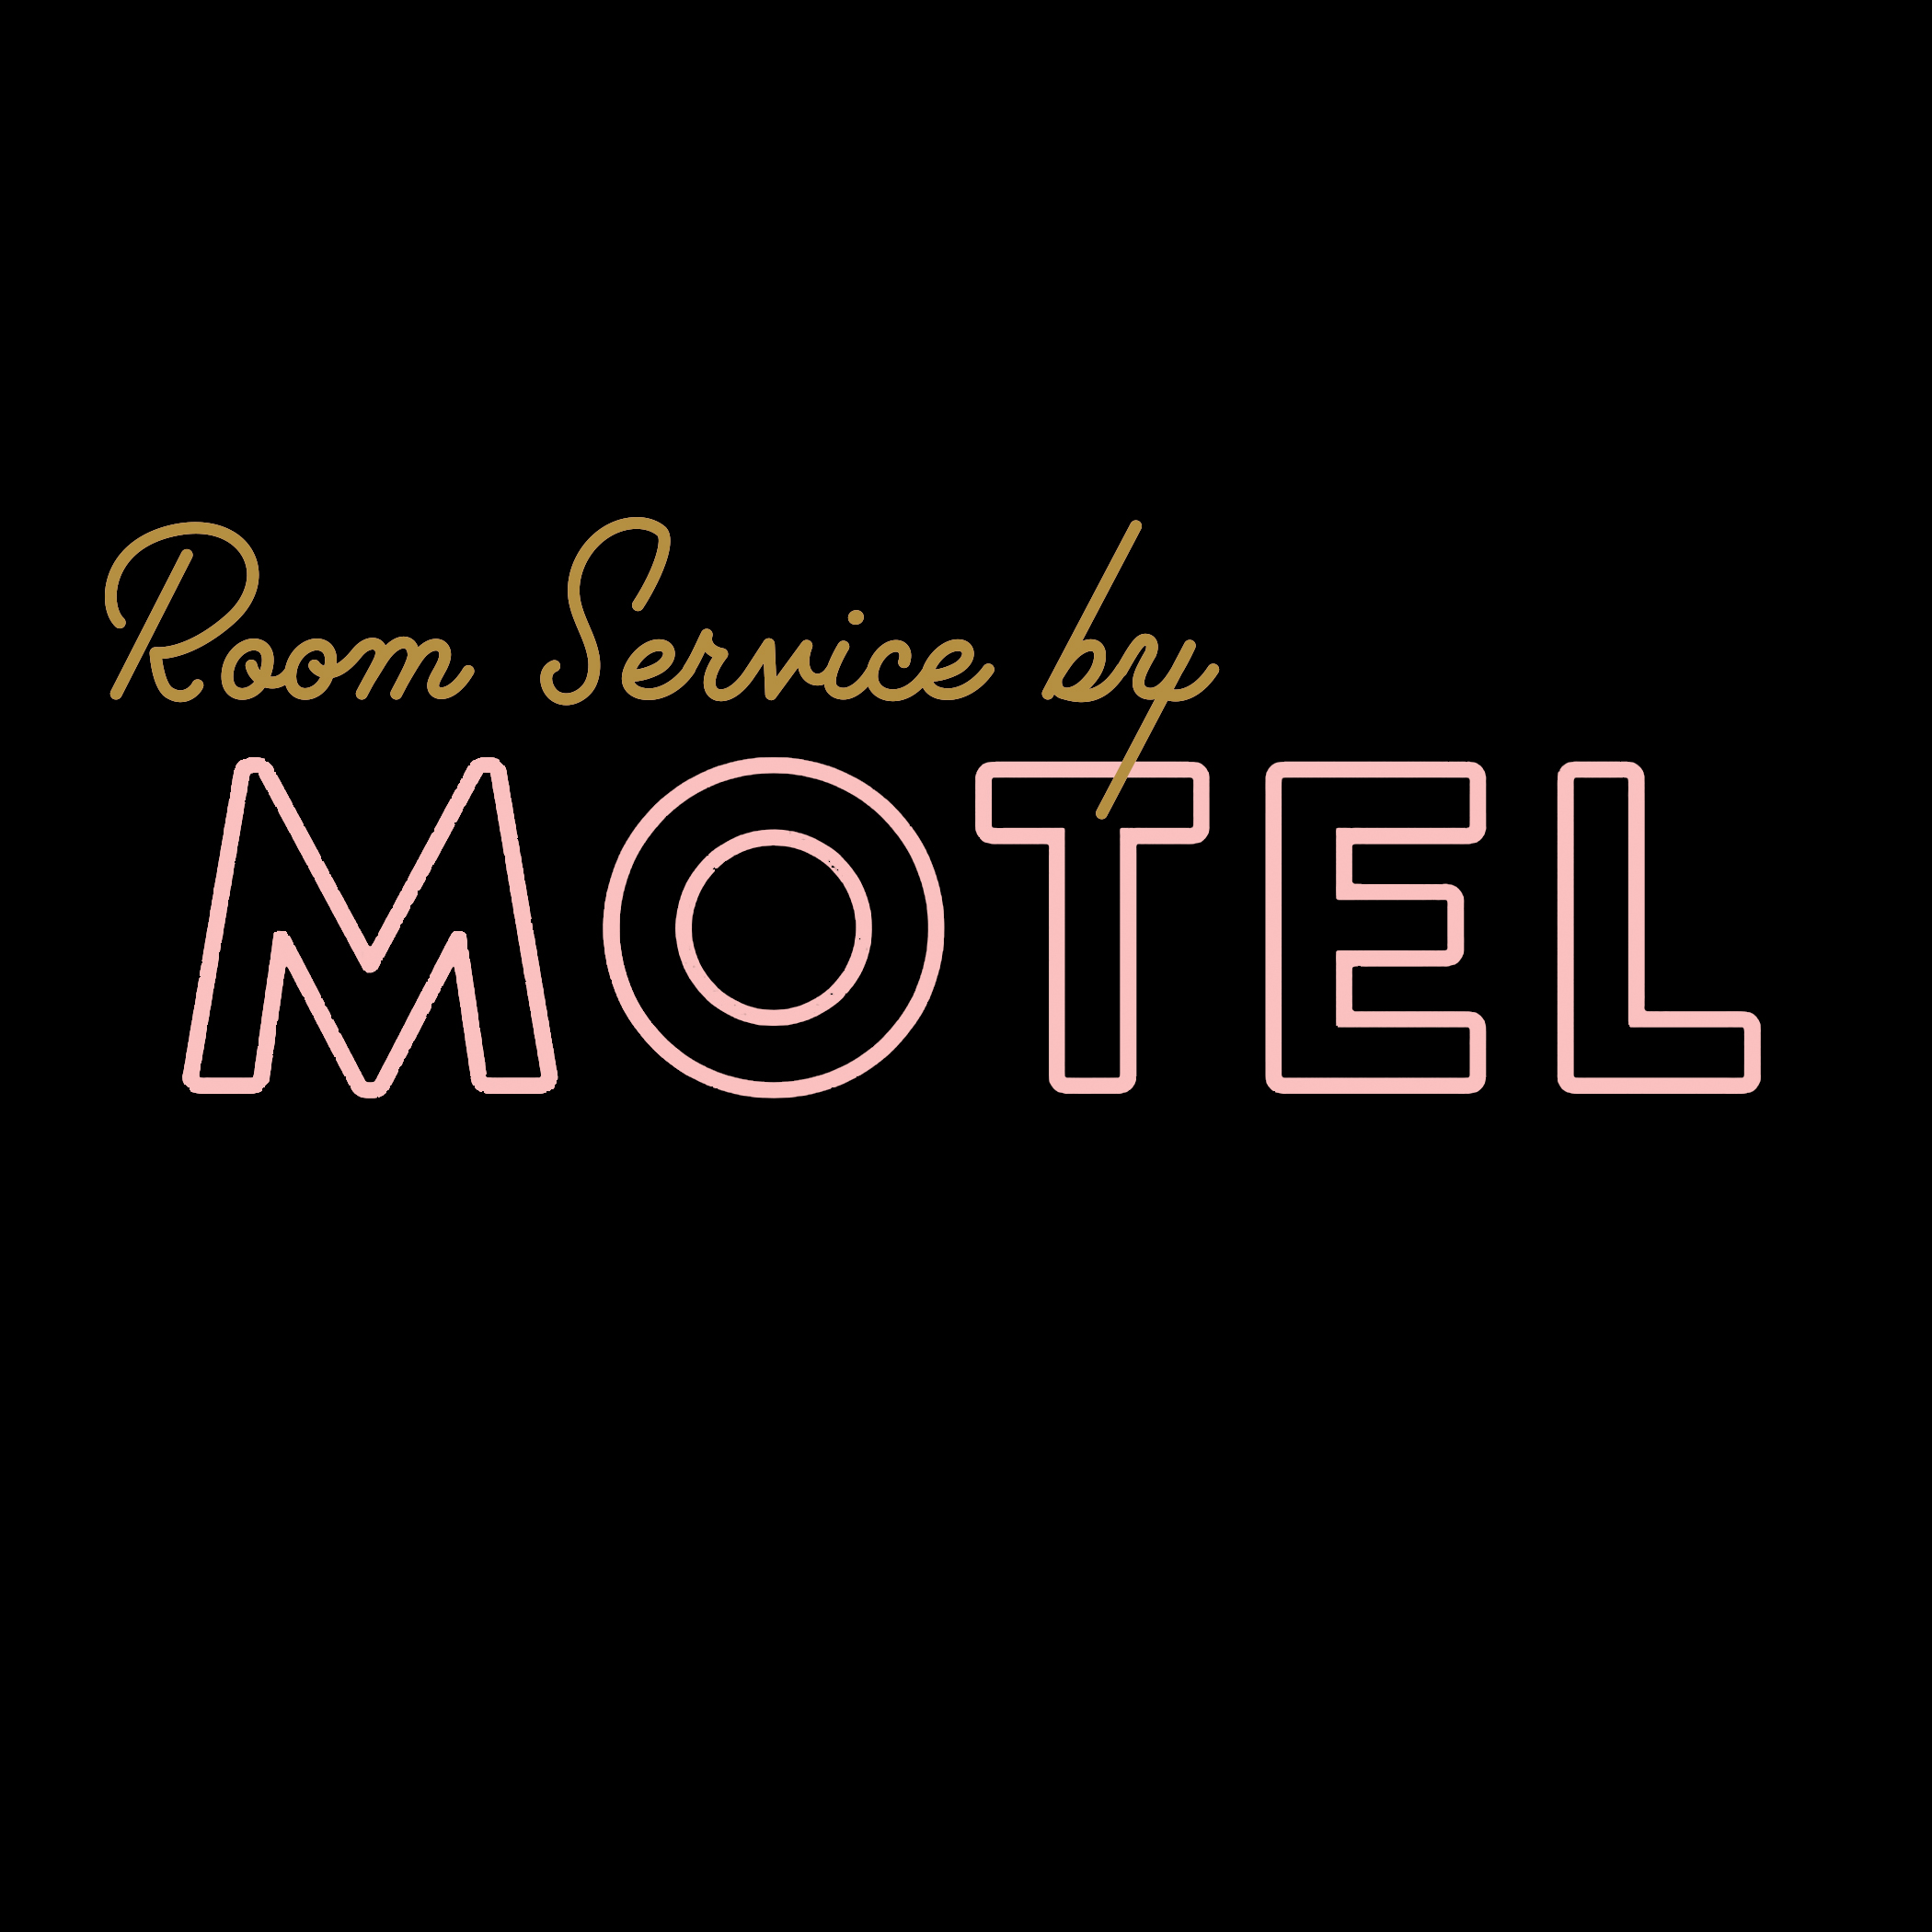 - Room Service is available in the evening beginning at 5pm. Check out the menu and click the order button below to order straight to your door via Doordash.*Room service is available by delivery only.Regular hours for Room Service:Friday - SundayOpens at 5:00pm